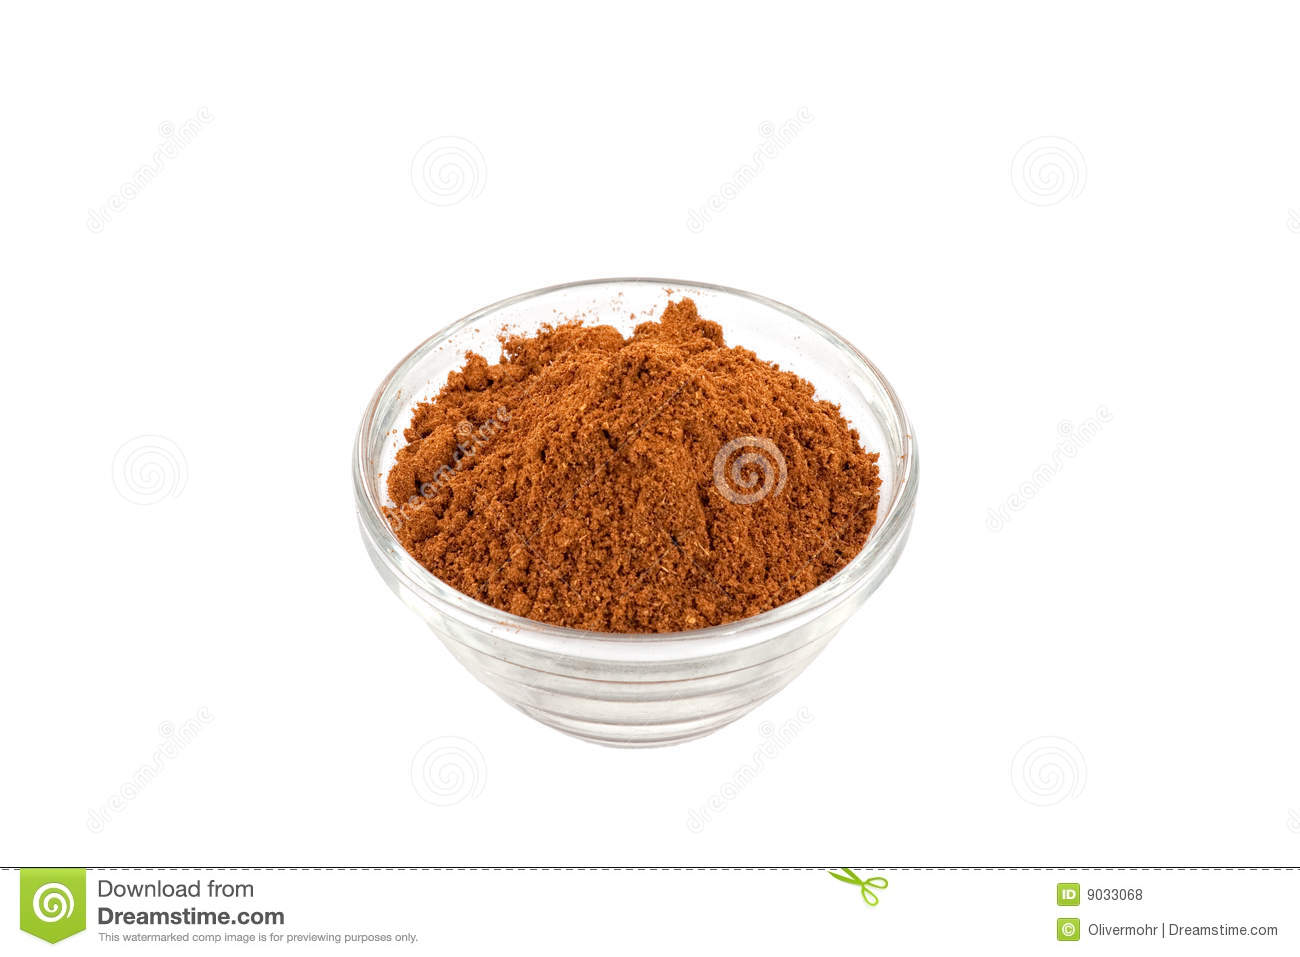 how to make five spice powder